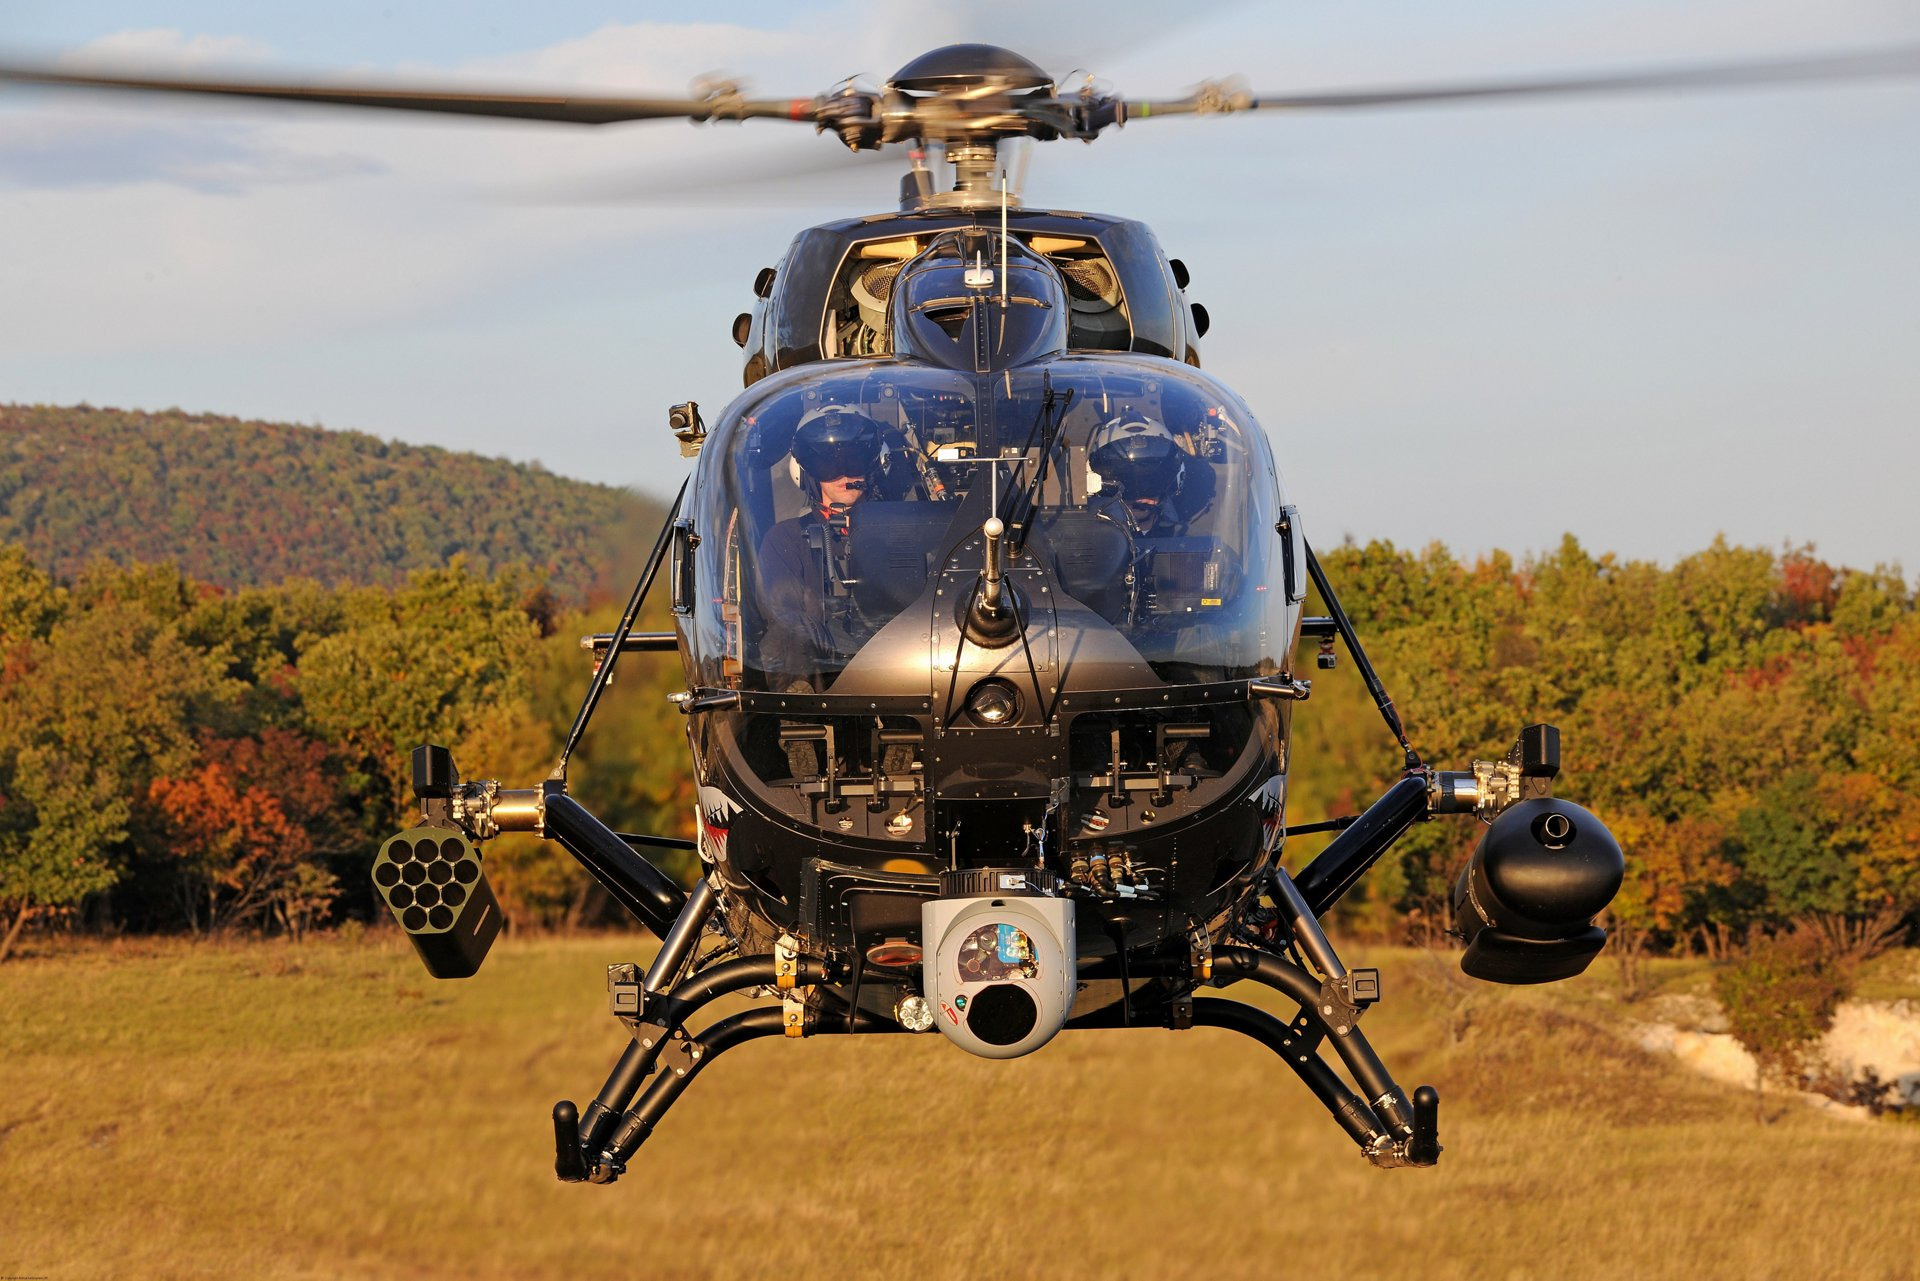 German Air Force's H145M with HForce weapon system